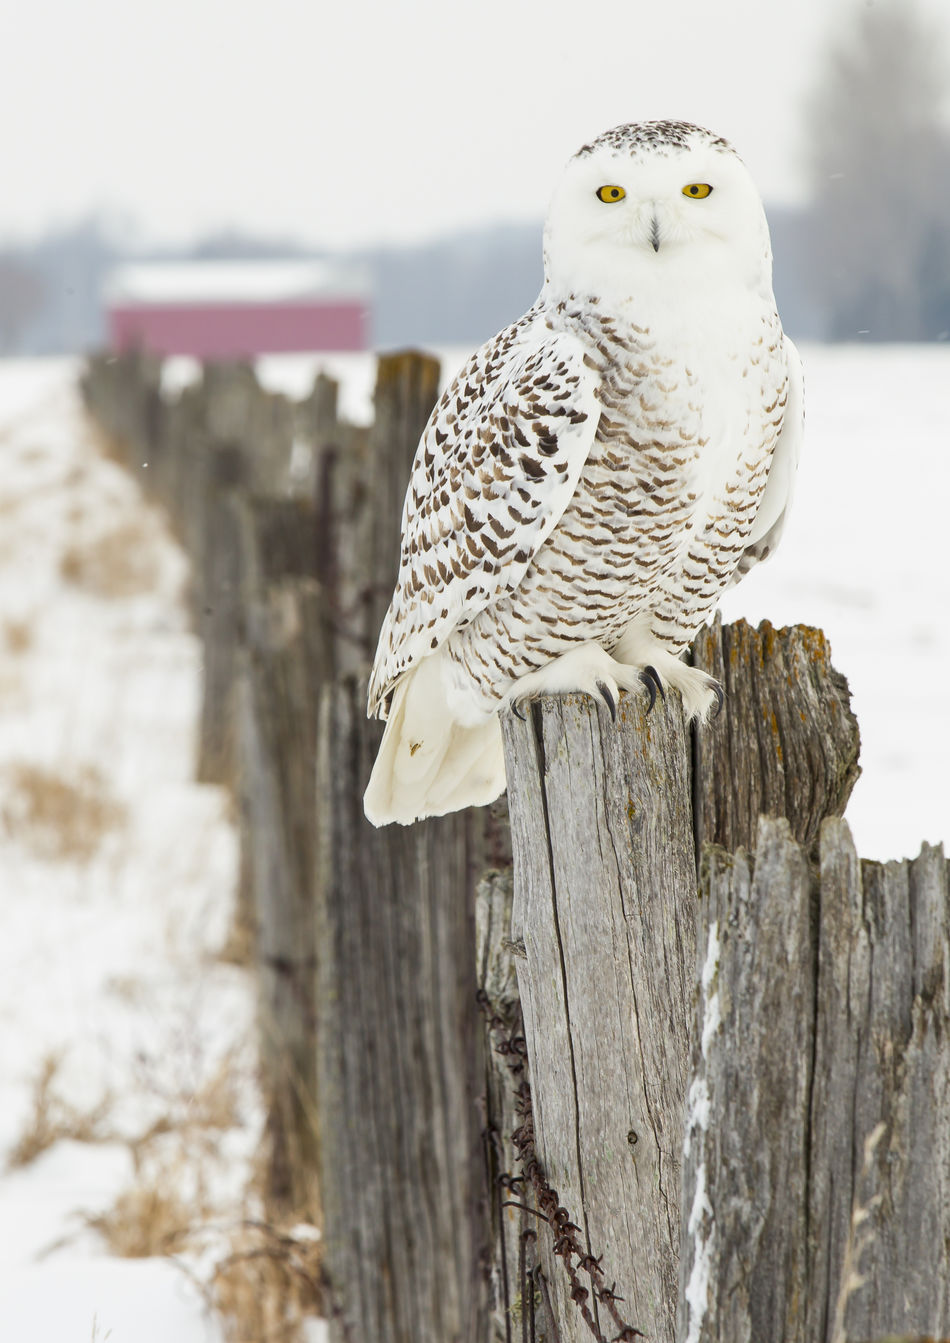 Snow owl posing Animal Themes Animal Wildlife Animals In The Wild Bird Bird Of Prey Close-up Day Fence Post Focus On Foreground Mourning Dove One Animal Outdoors Owl Snow Owl